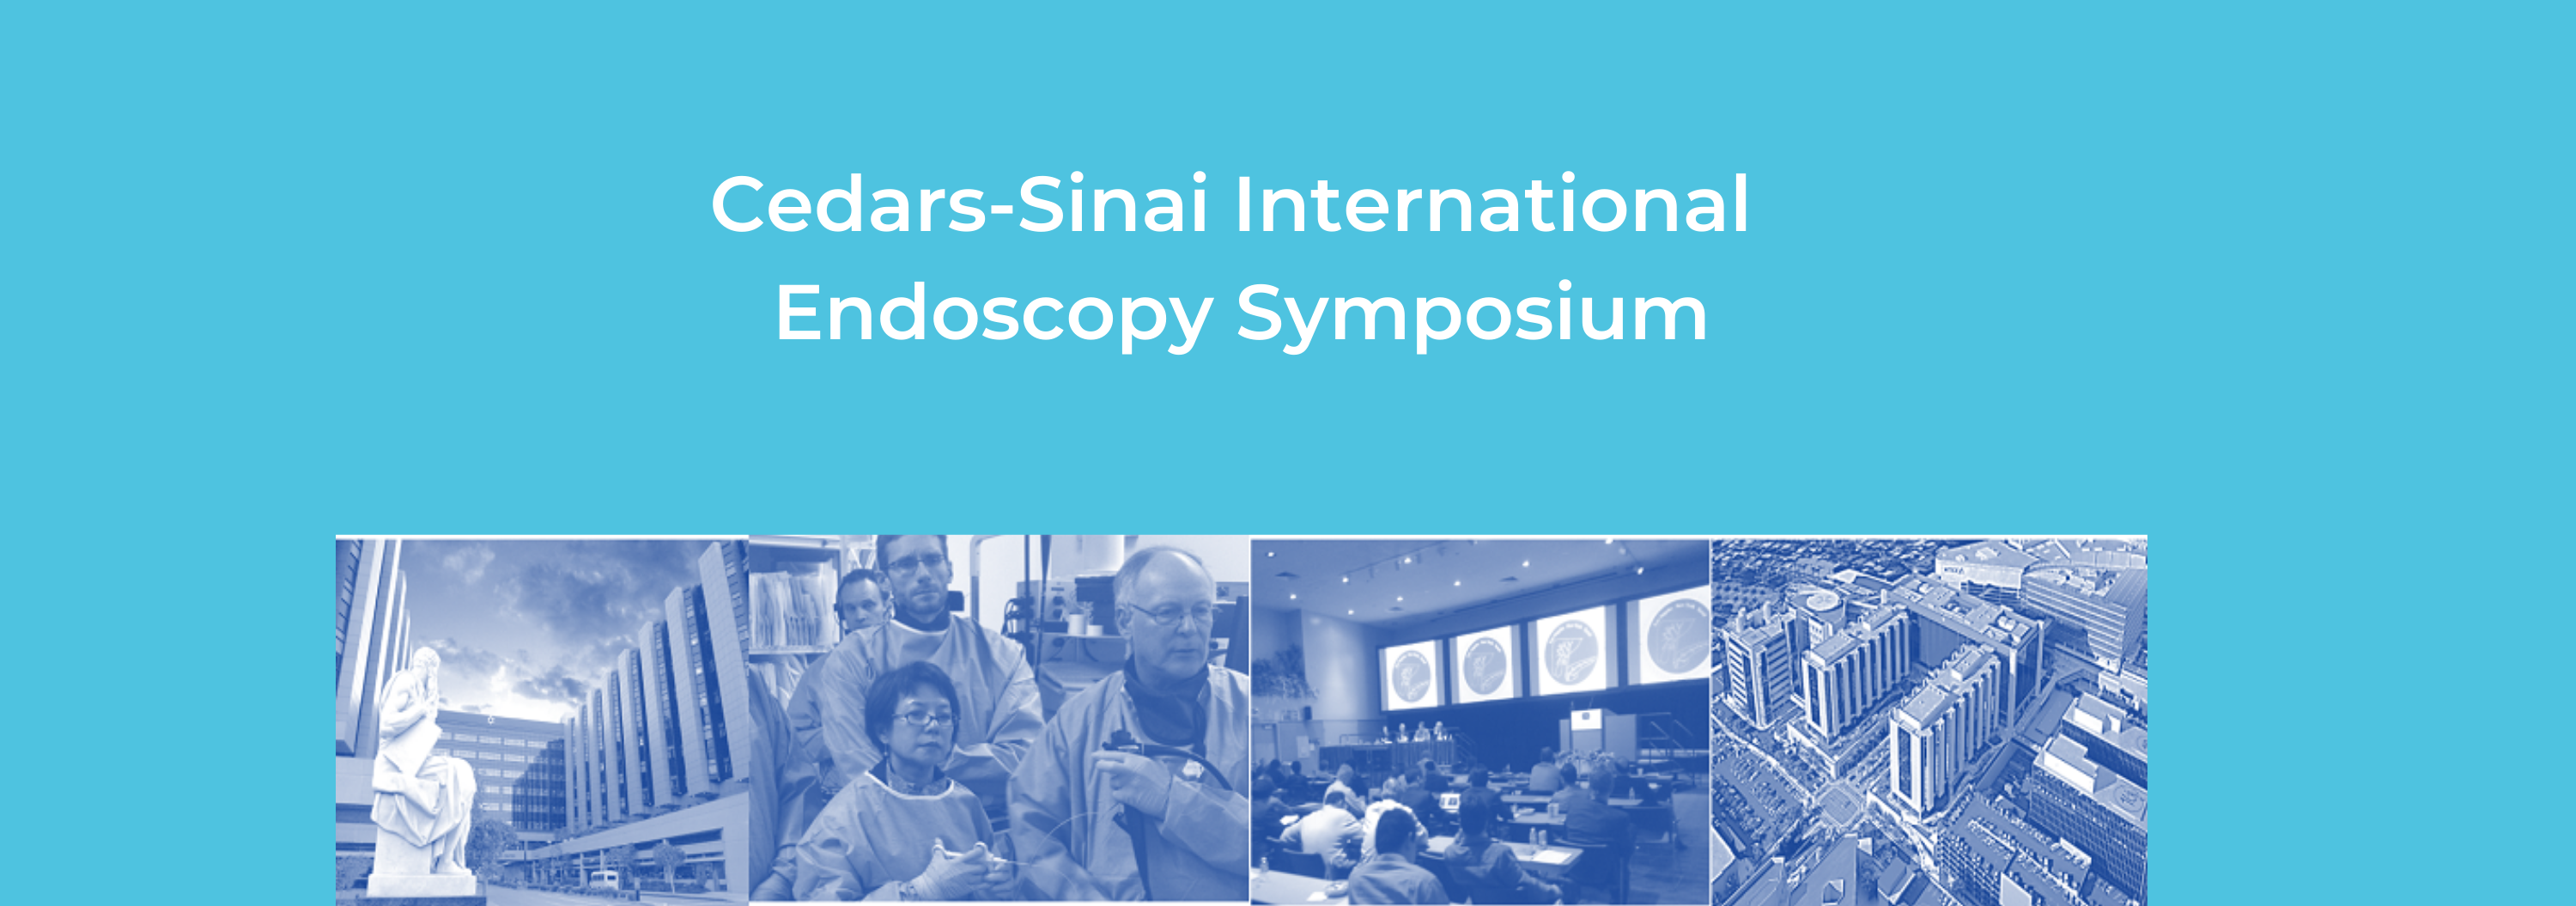 2020 Cedars-Sinai International Endoscopy Symposium Banner